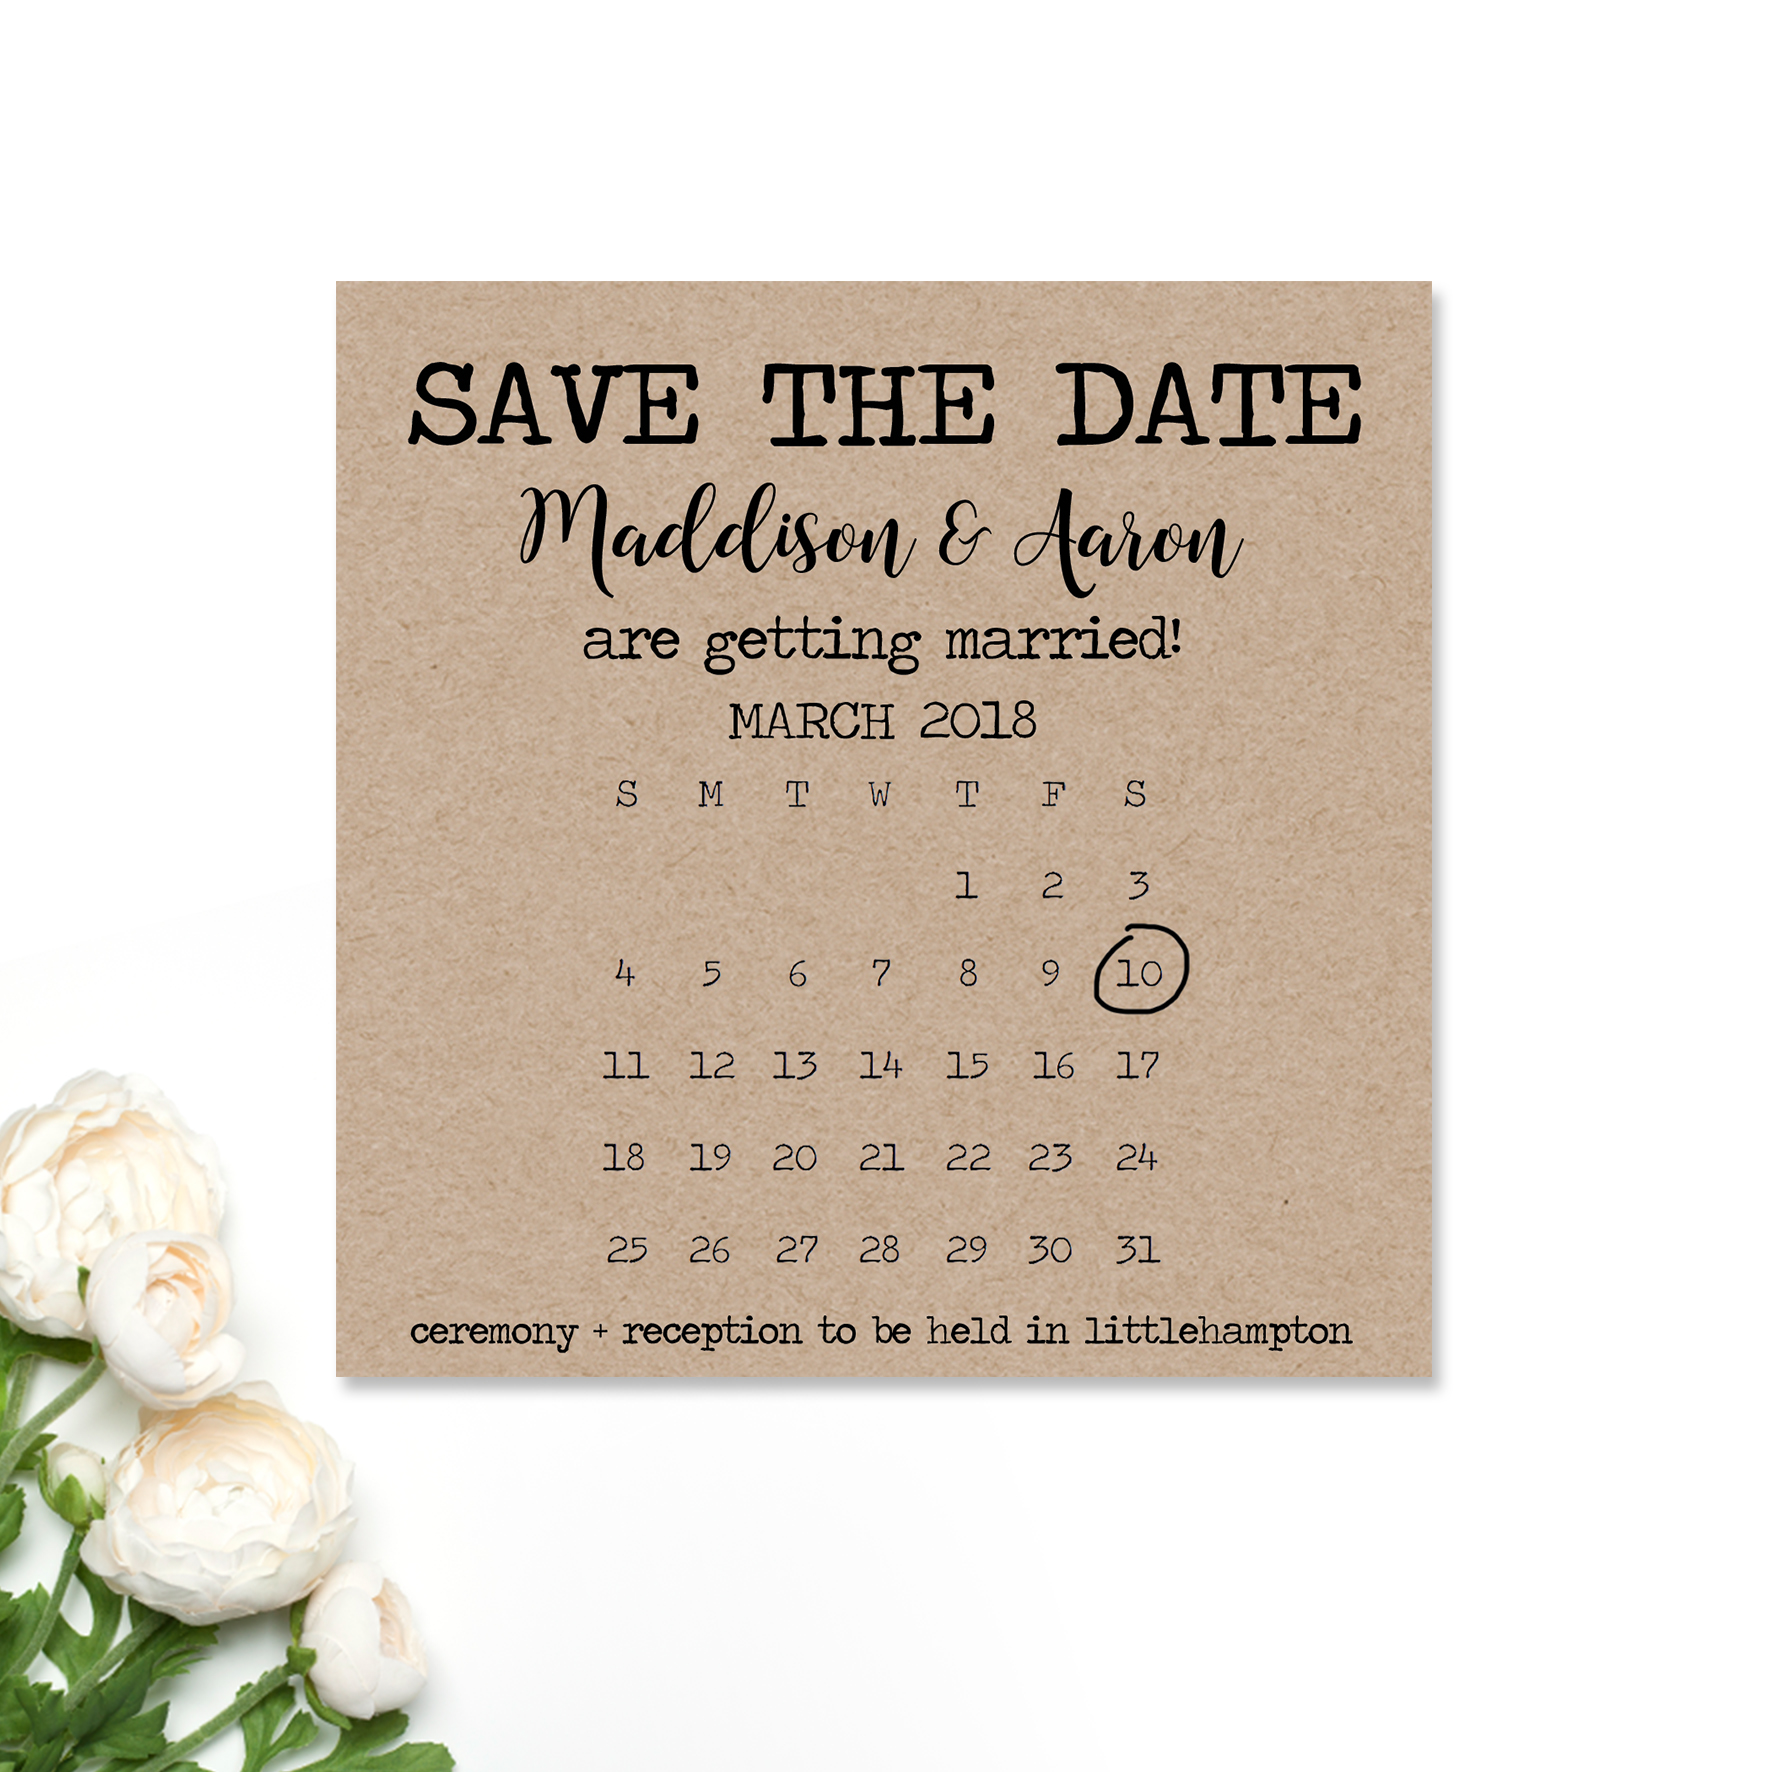 Maddison + Aaron Save the Date Card